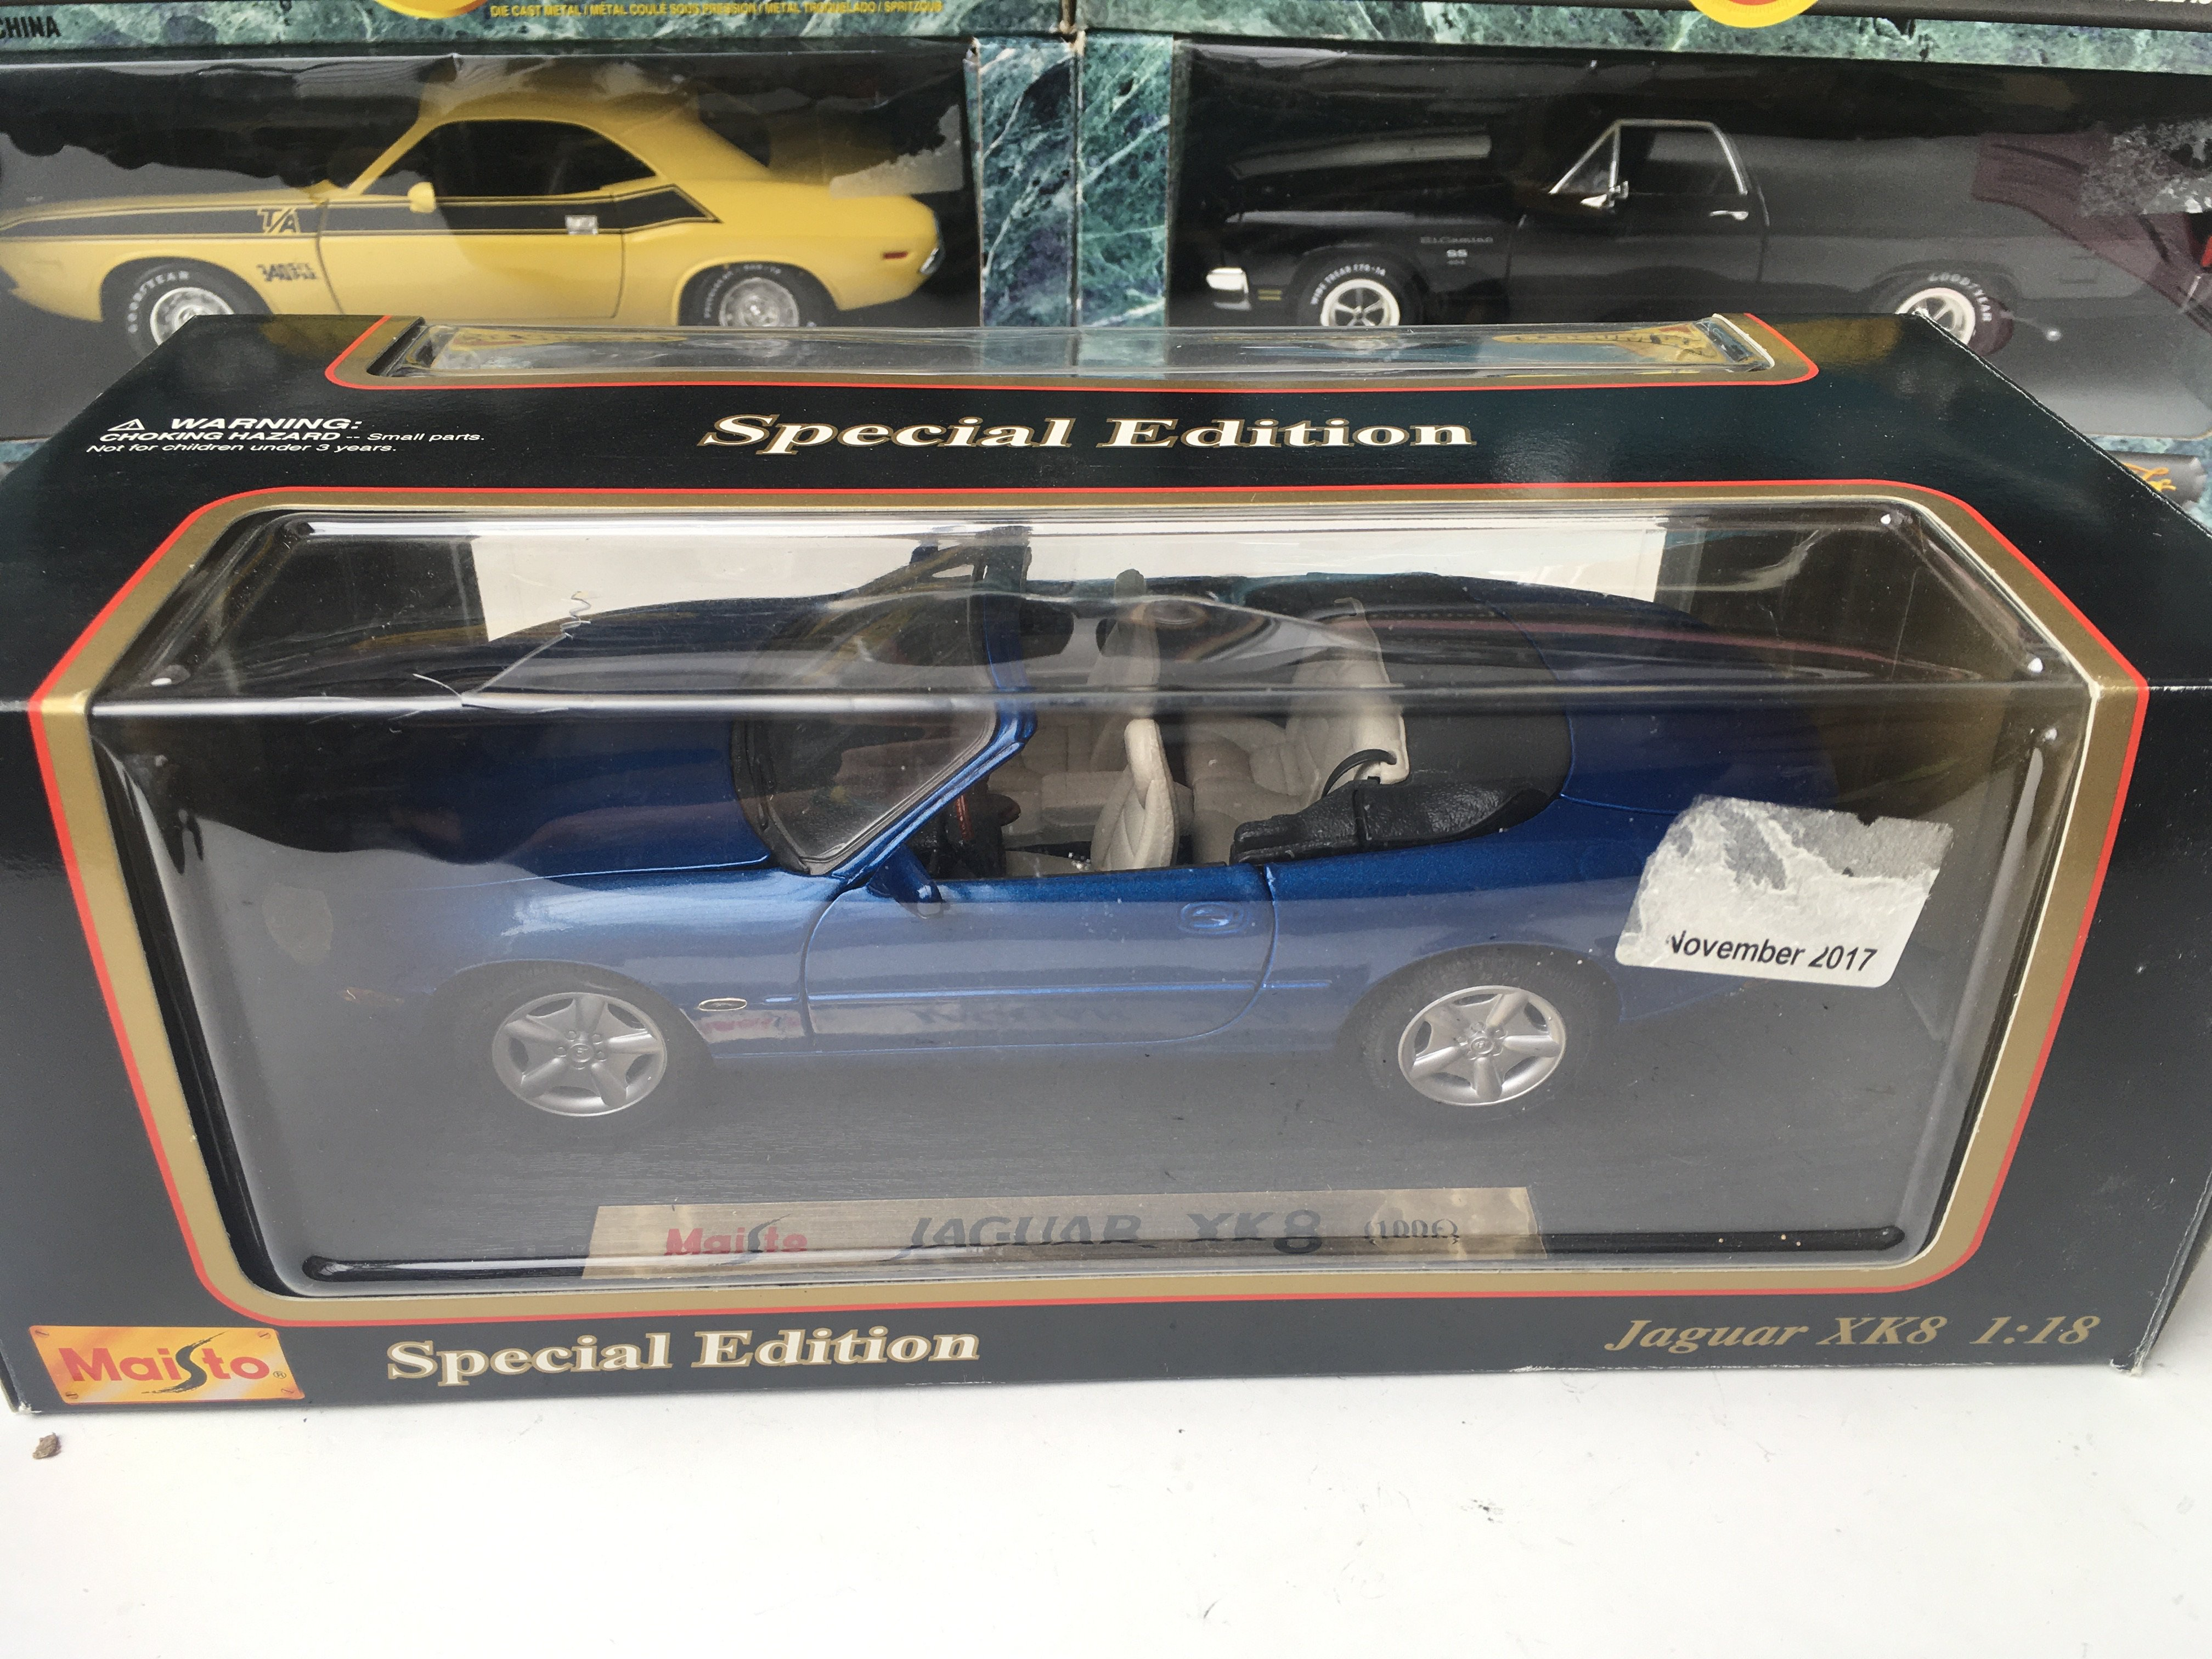 A Collection of American Muscle Cars and Maisto 1: - Image 2 of 3